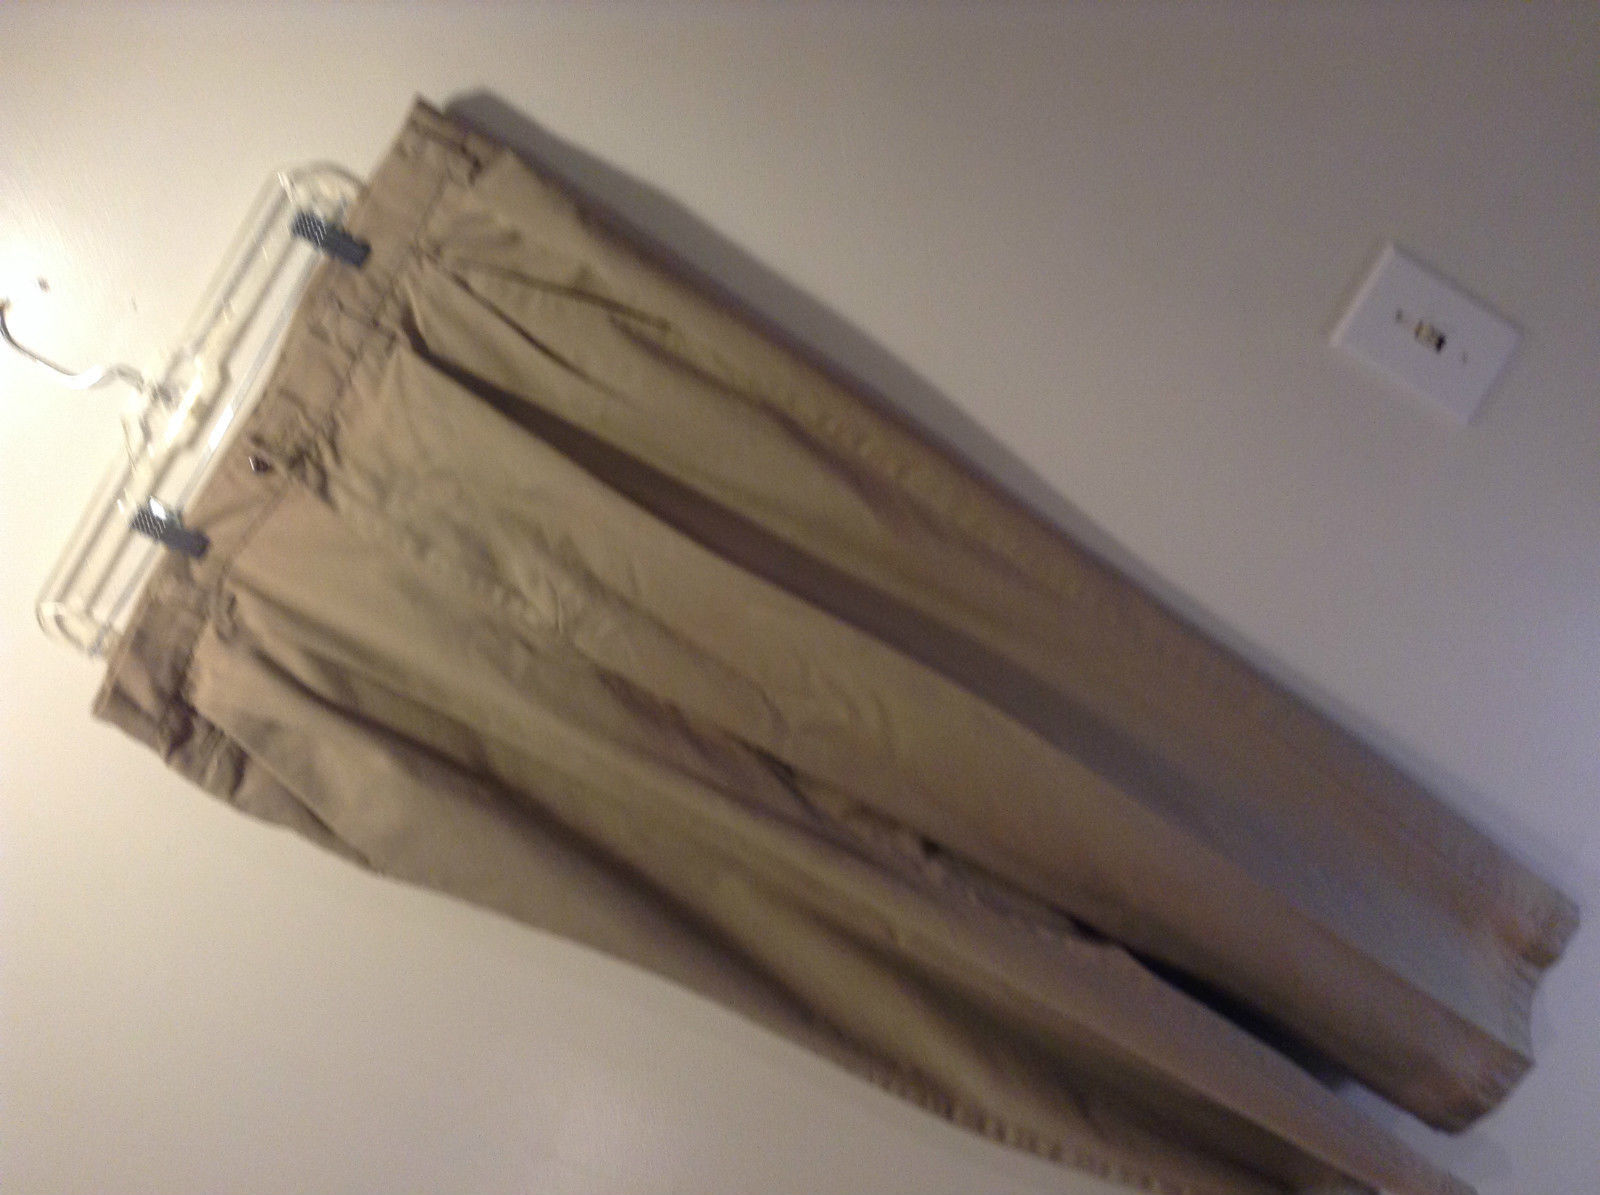 Tan Haggar Pleated Front Dress Pants Size 38 by 30 Front Back Pockets